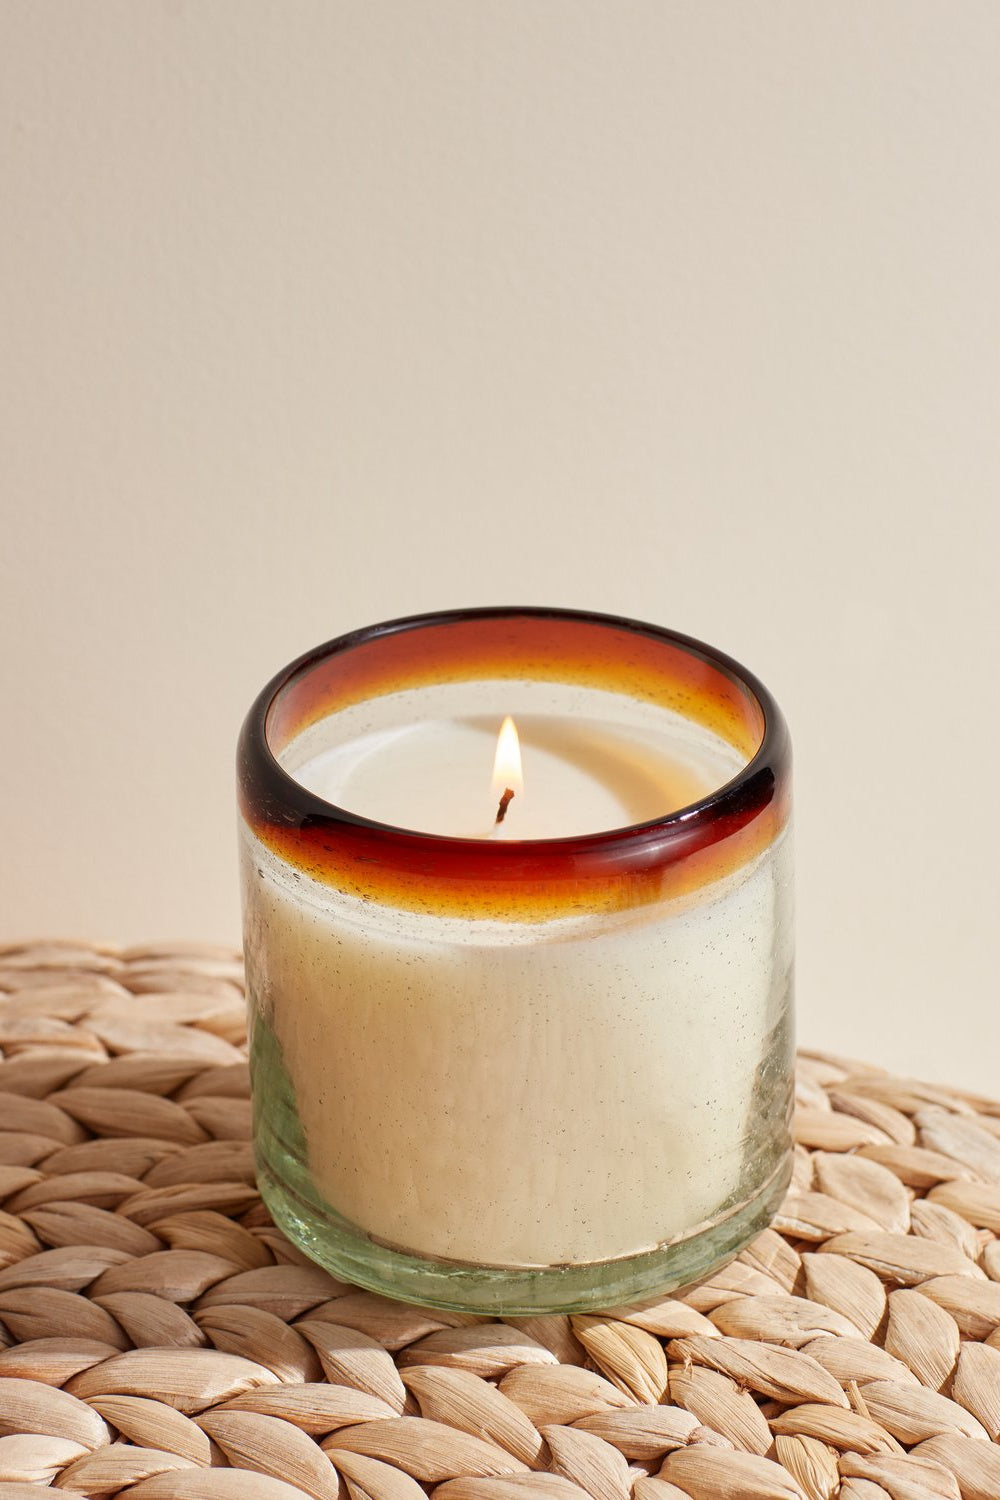 LA PLAYA ORANGE BLOSSOM CANDLE